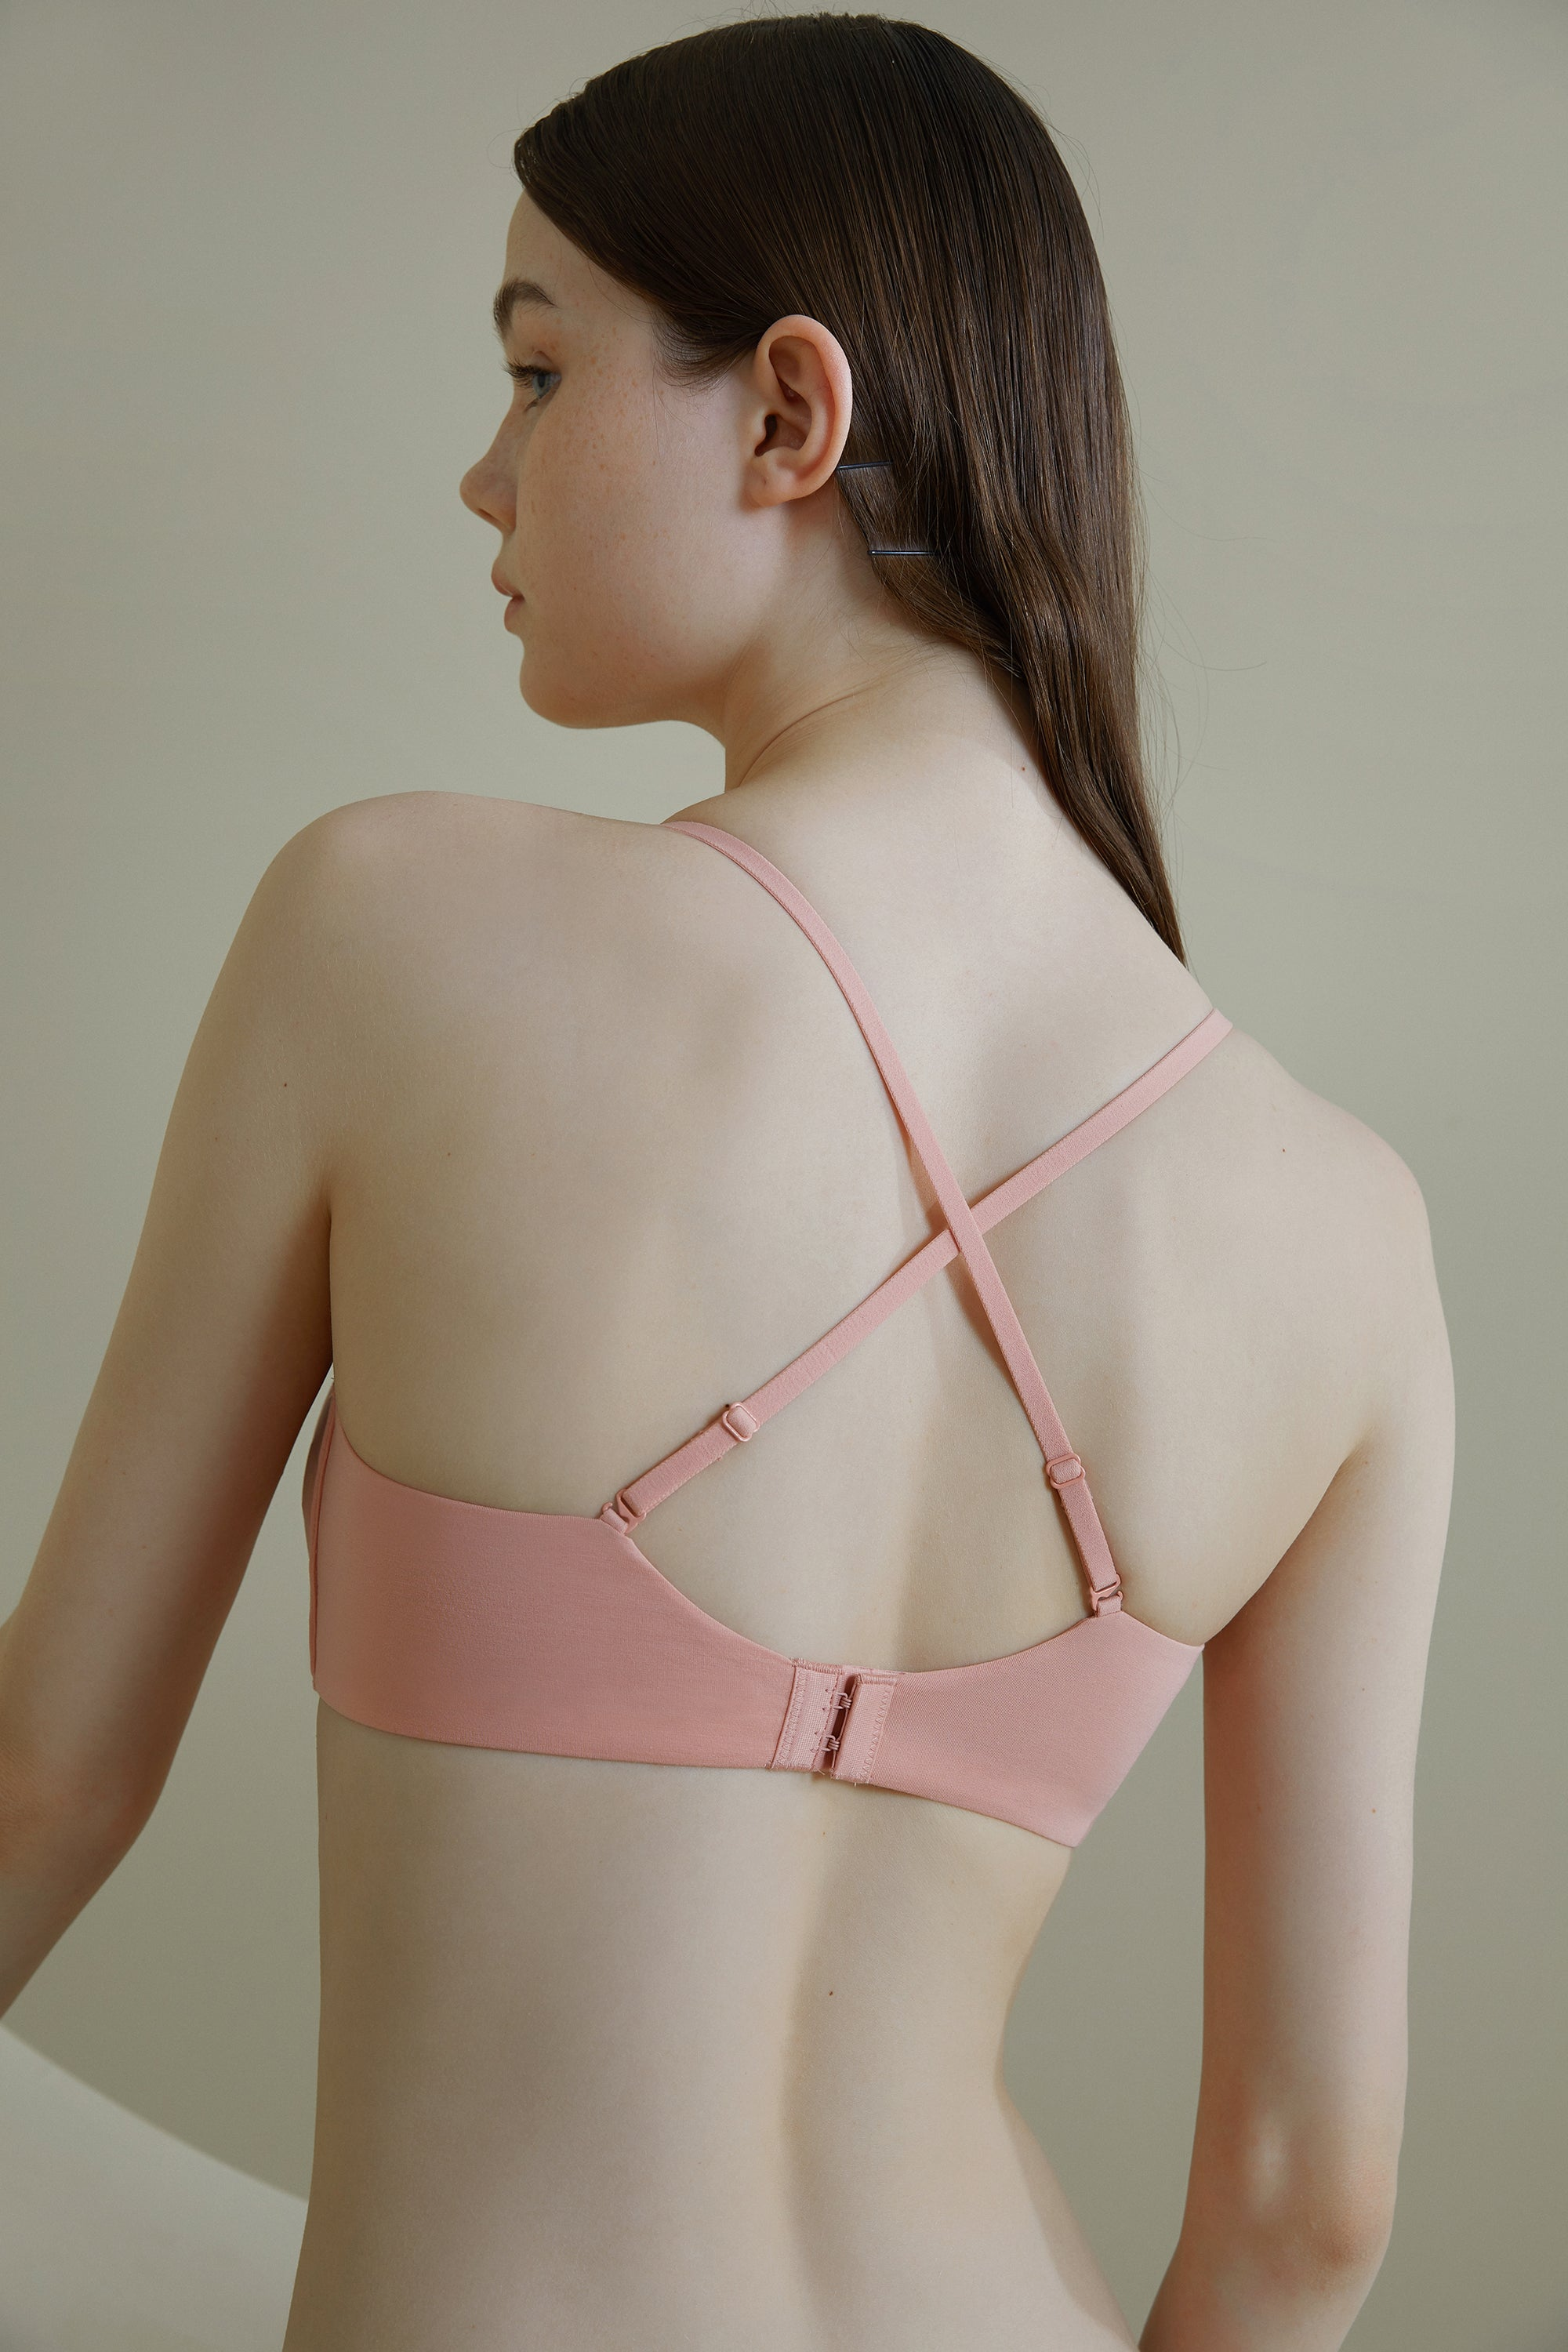 NEIWAI Convertible Soft Modal Bra in Soft Pink